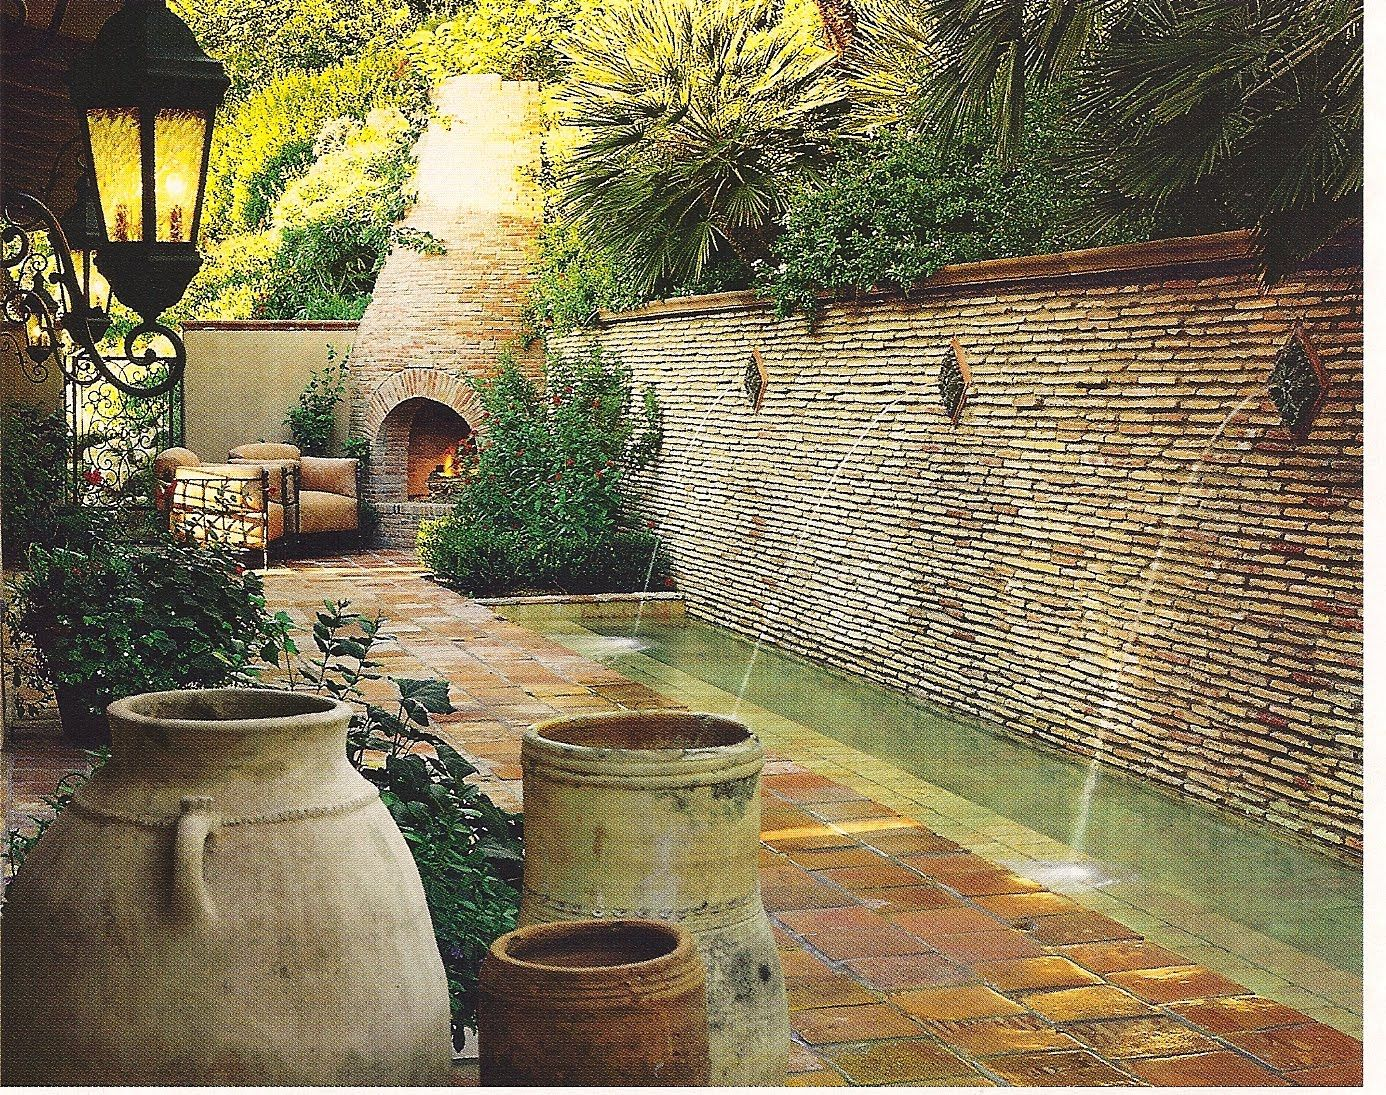 a little to tuscan for me but love the idea of a small ... on Courtyard Pond Ideas id=21155